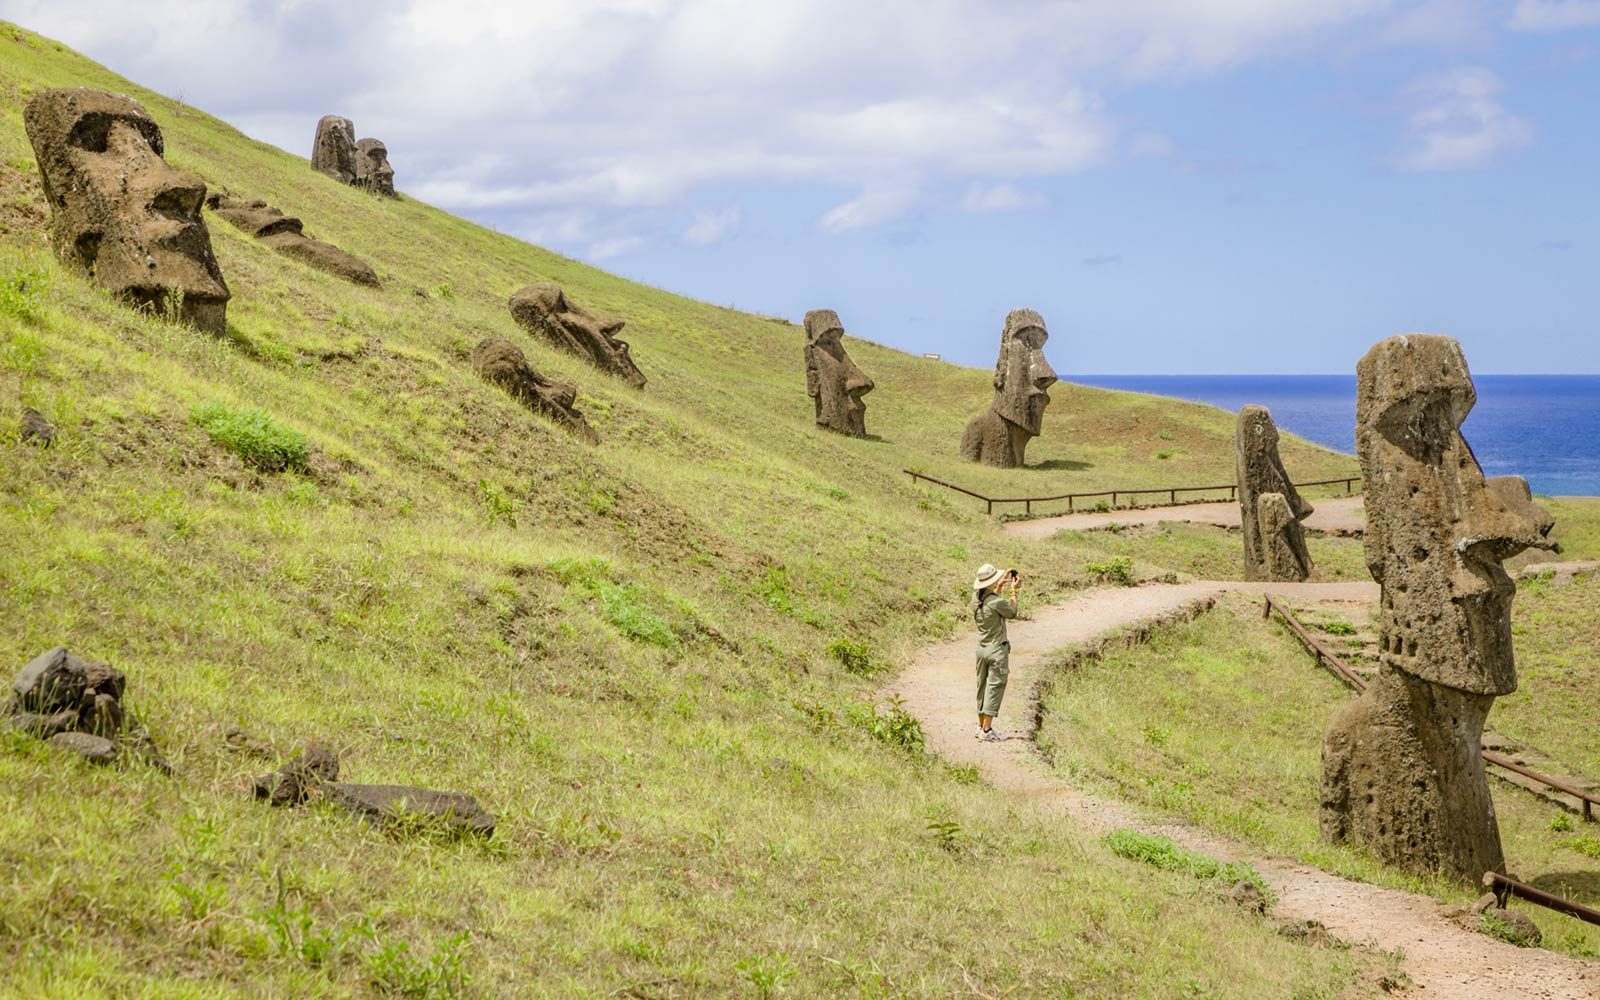 2. Easter Island, Chile